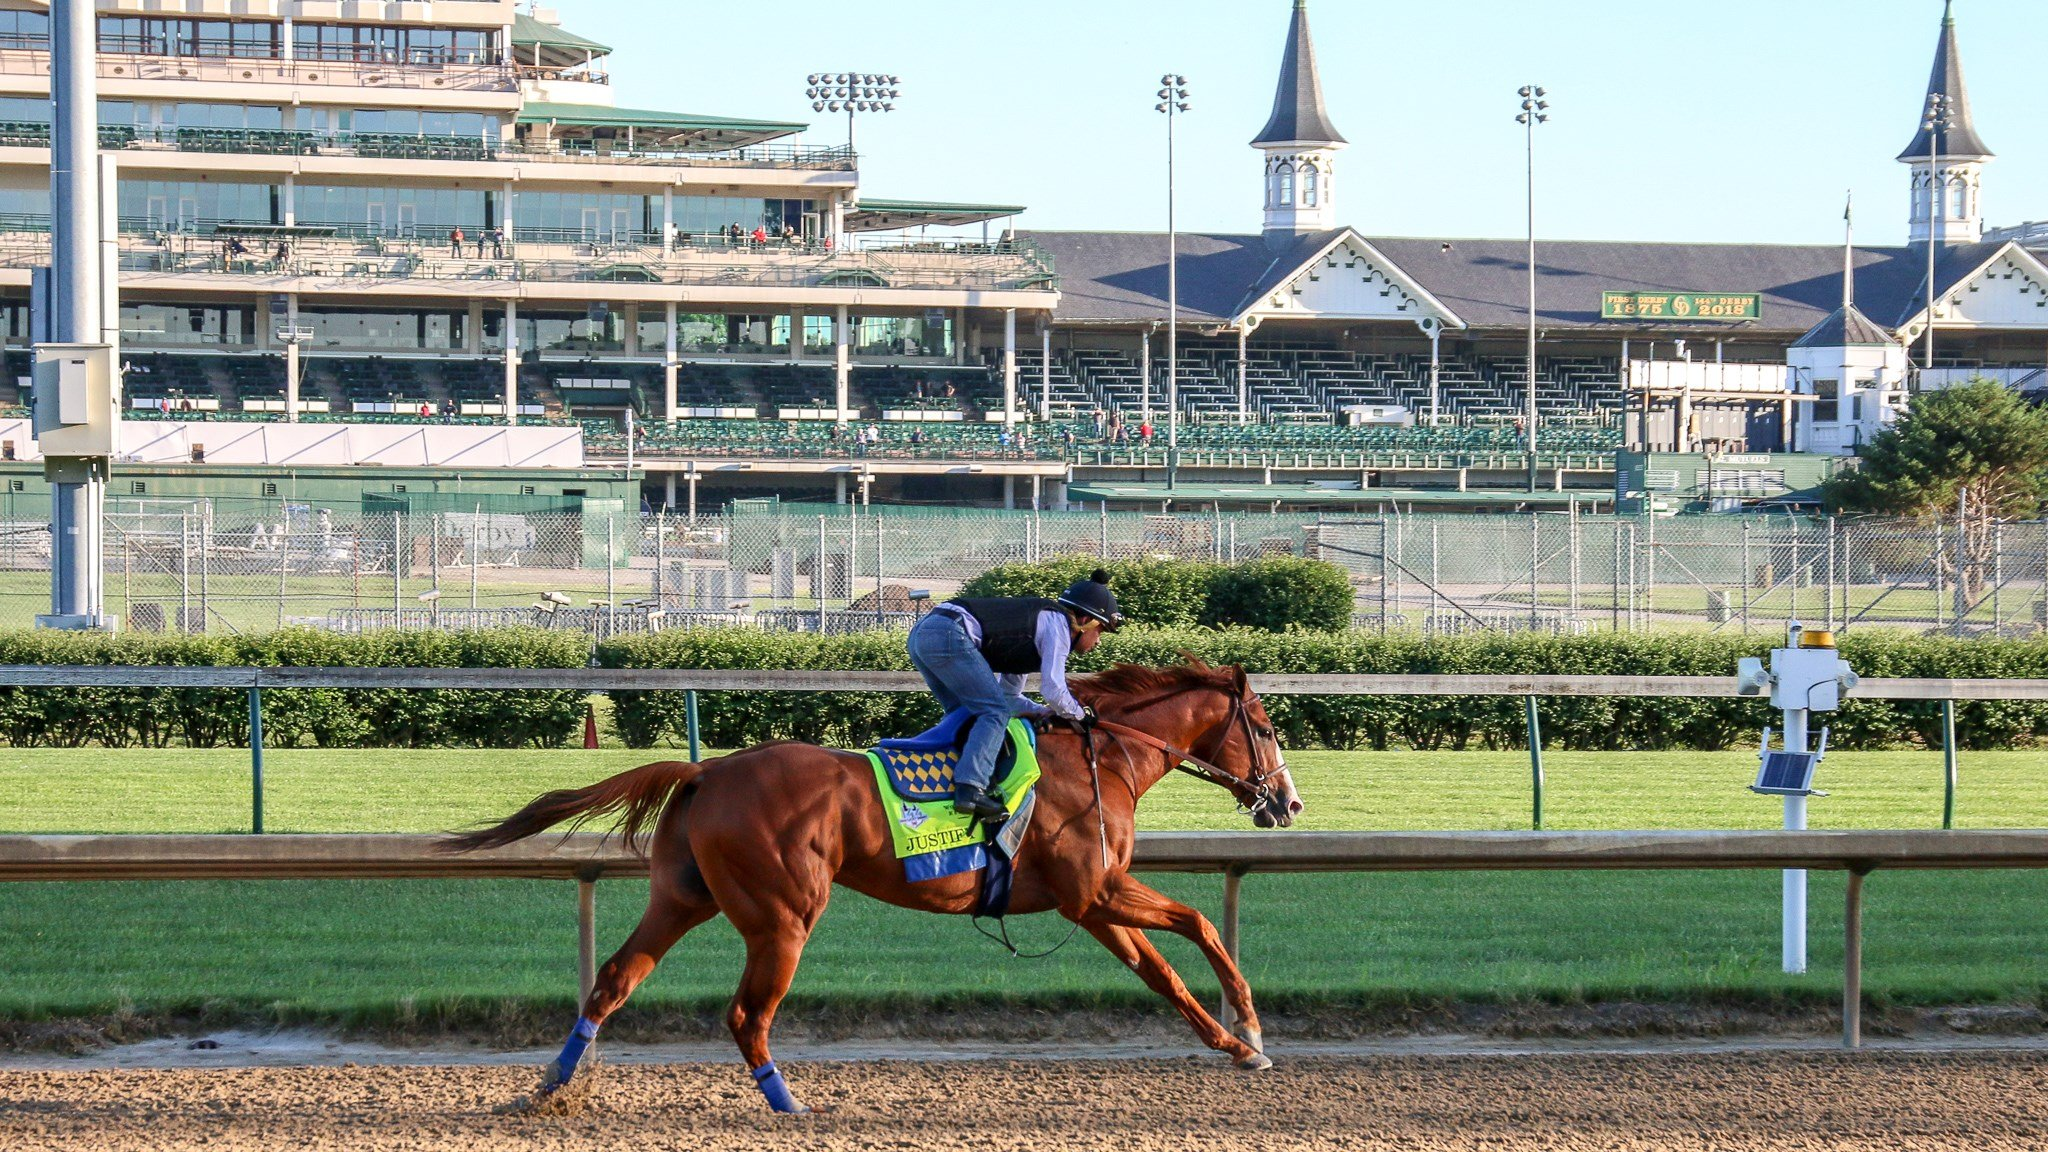 Justify trains at Churchill Downs (WDRB photo by Eric Crawford)